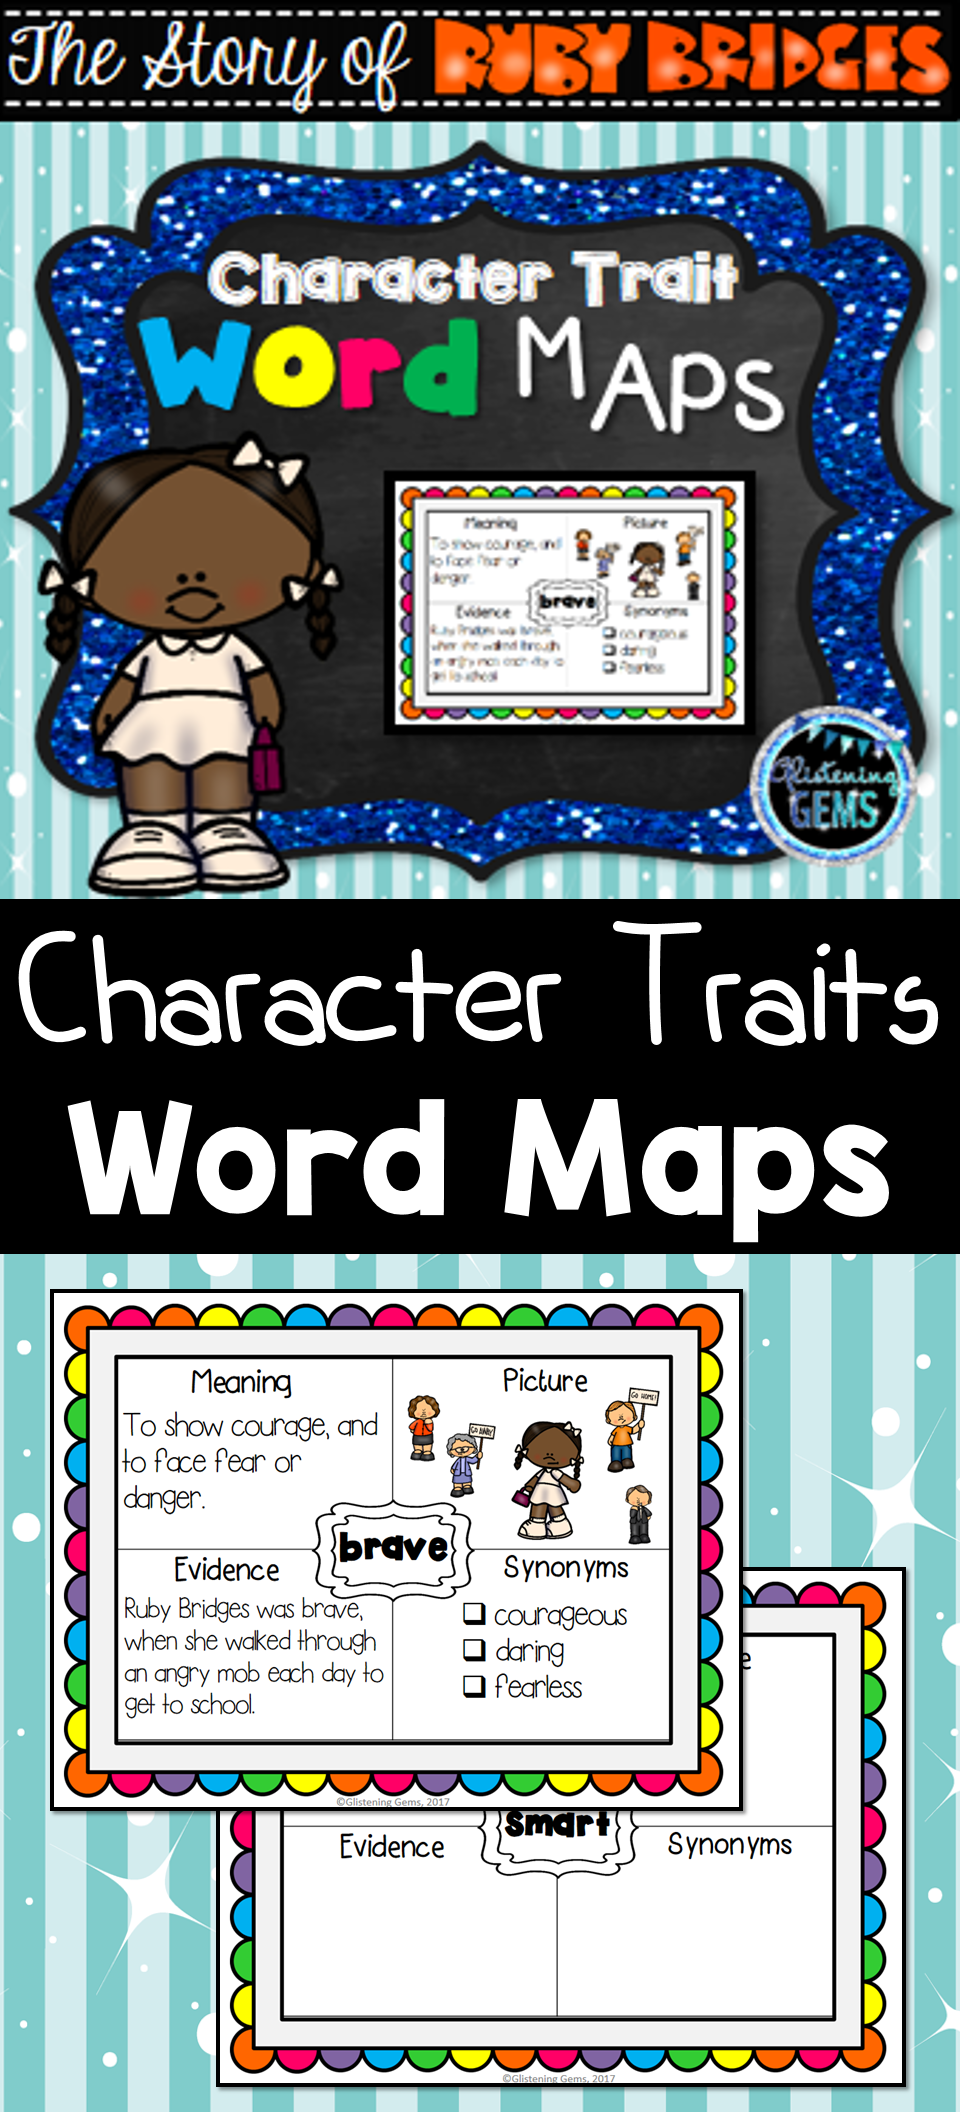 ruby bridges character trait word maps graphic organizers word